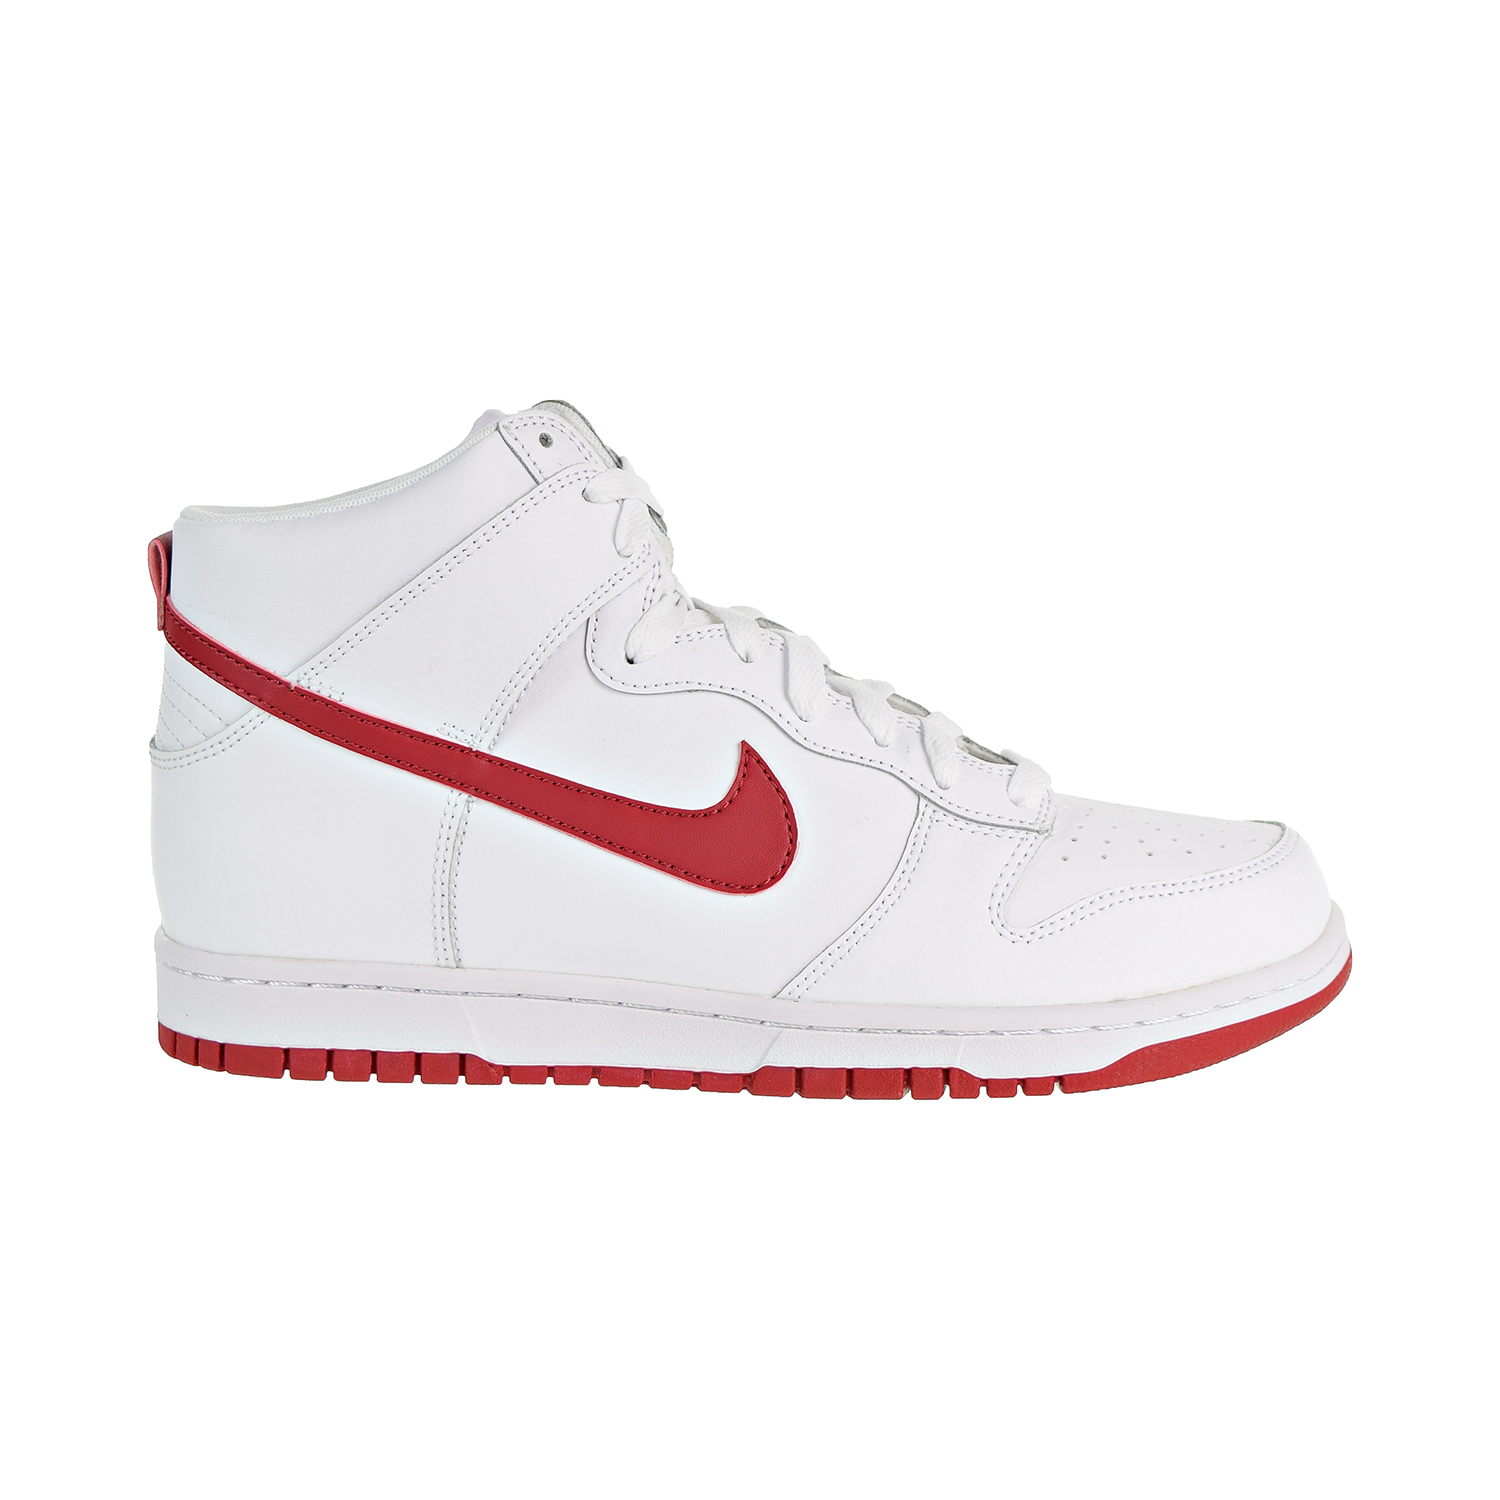 best loved e0c96 792d5 Details about Nike Dunk Hi Mens Shoes WhiteGym Red BlancRouge Gym  904233-102